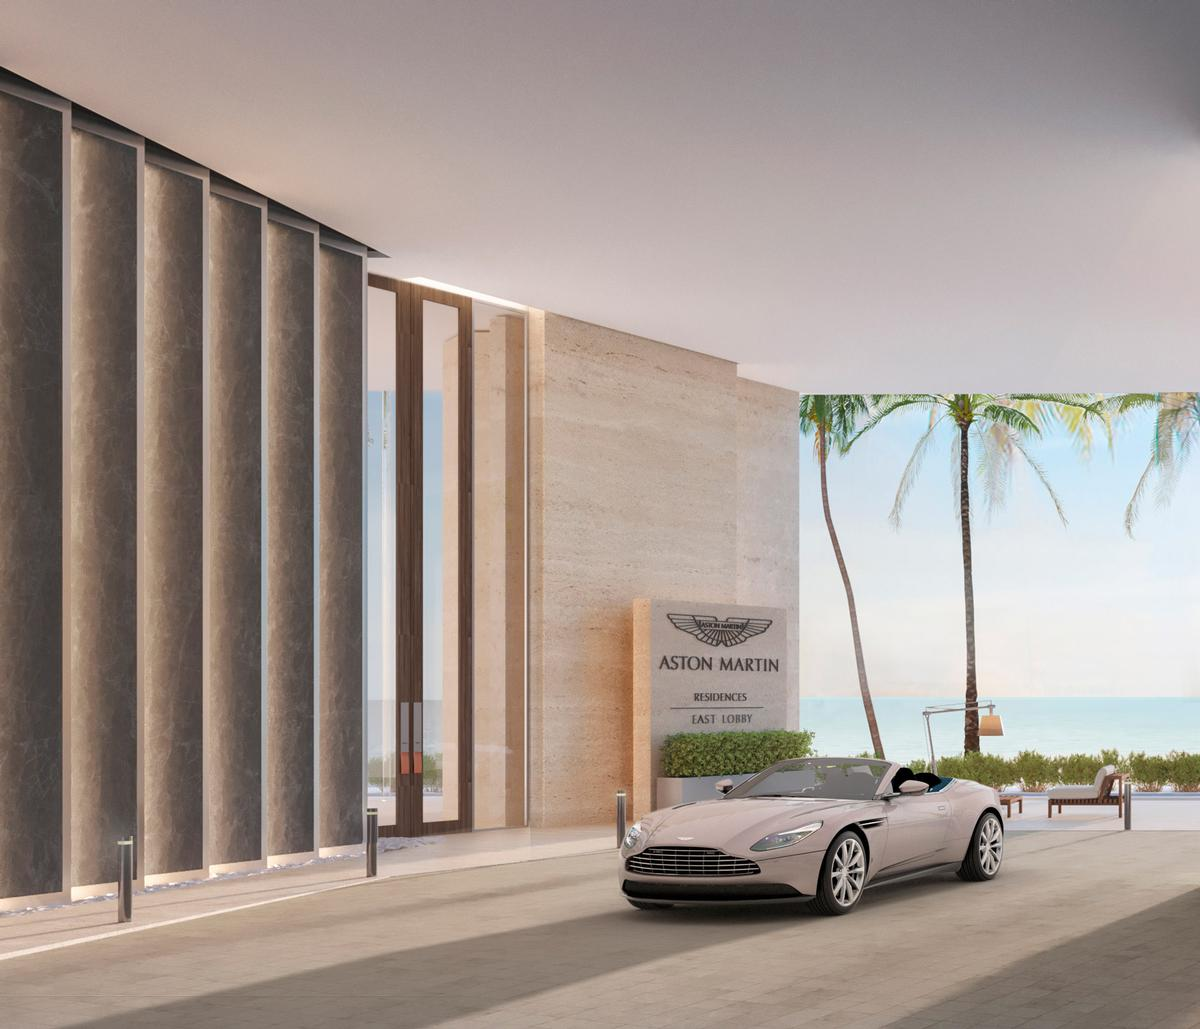 Residents will have access to concierge services / Aston Martin